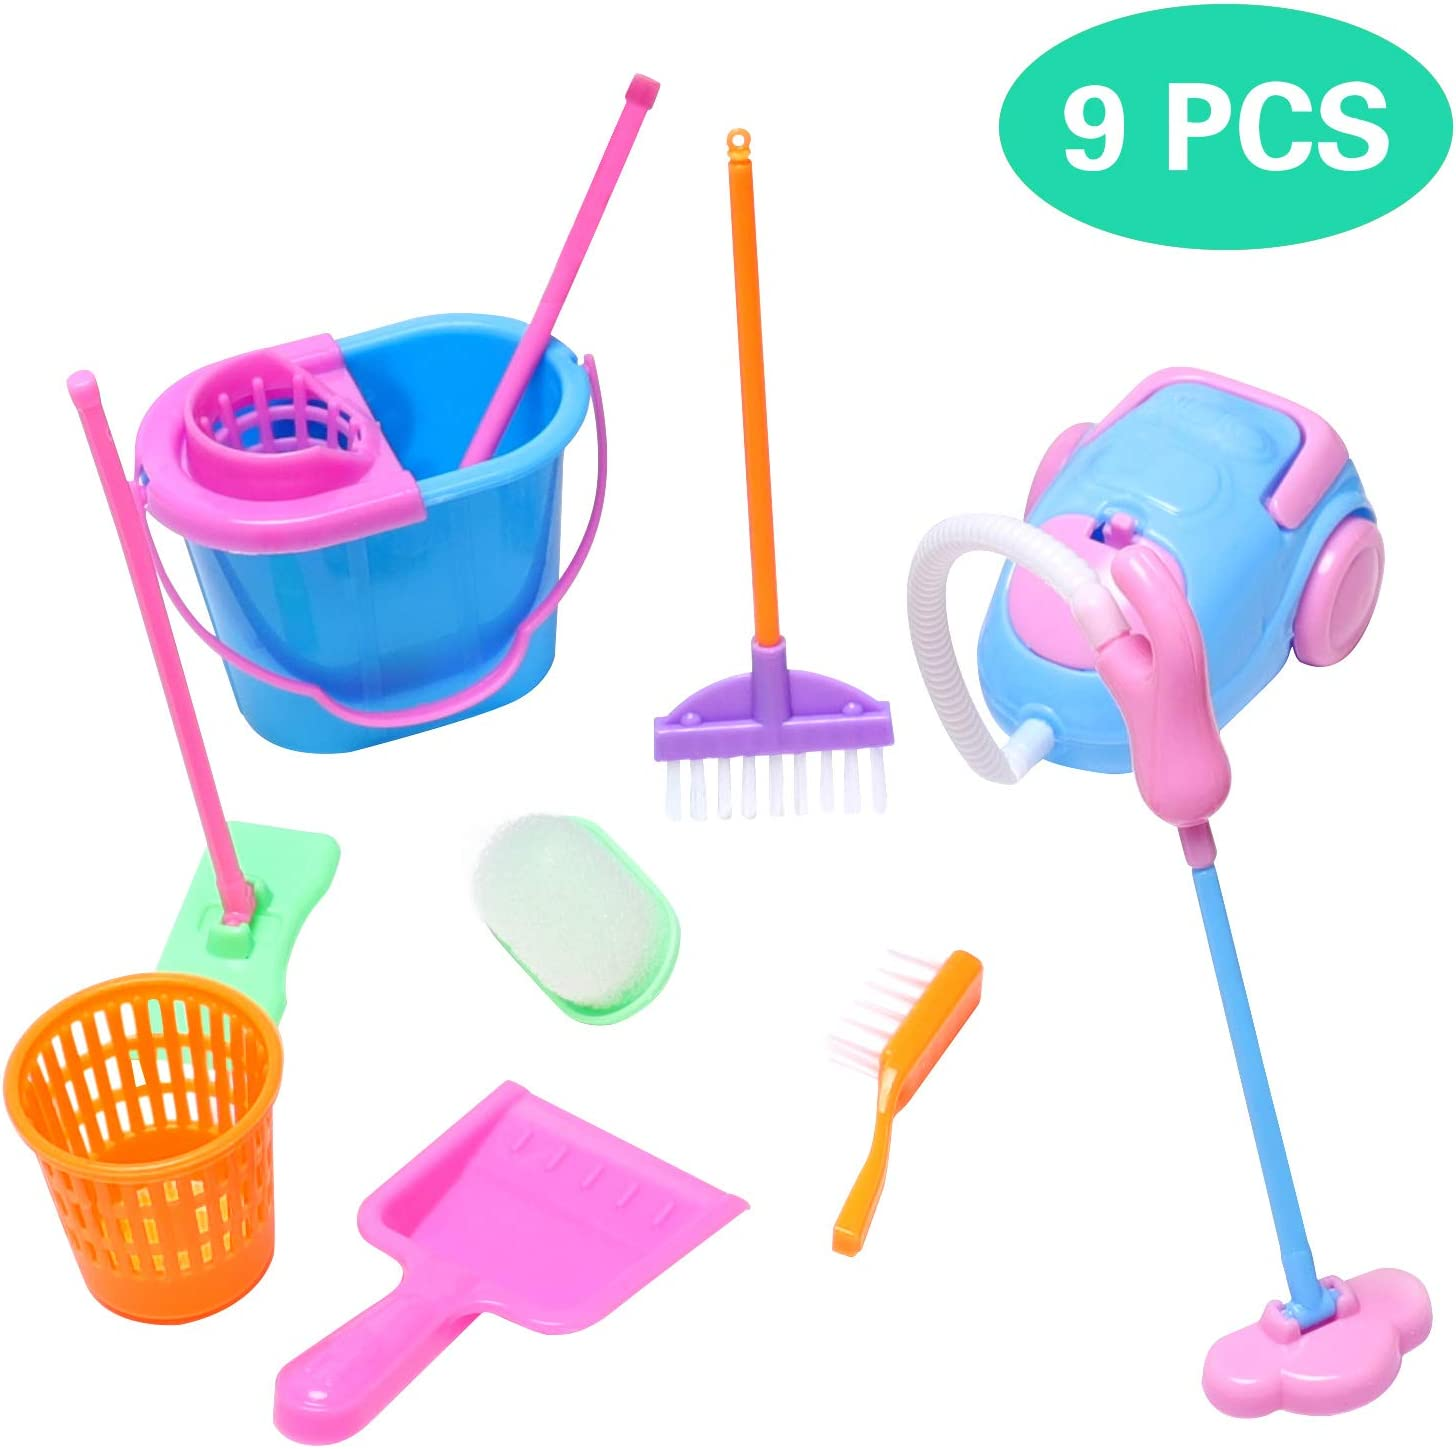 Snake 9pcs/Set Mini Pretend Play Clean Sets -Including Cleaning Toys Broom, Dustpan, Brush, Bucket, Mop, Great Toy Gift for kids